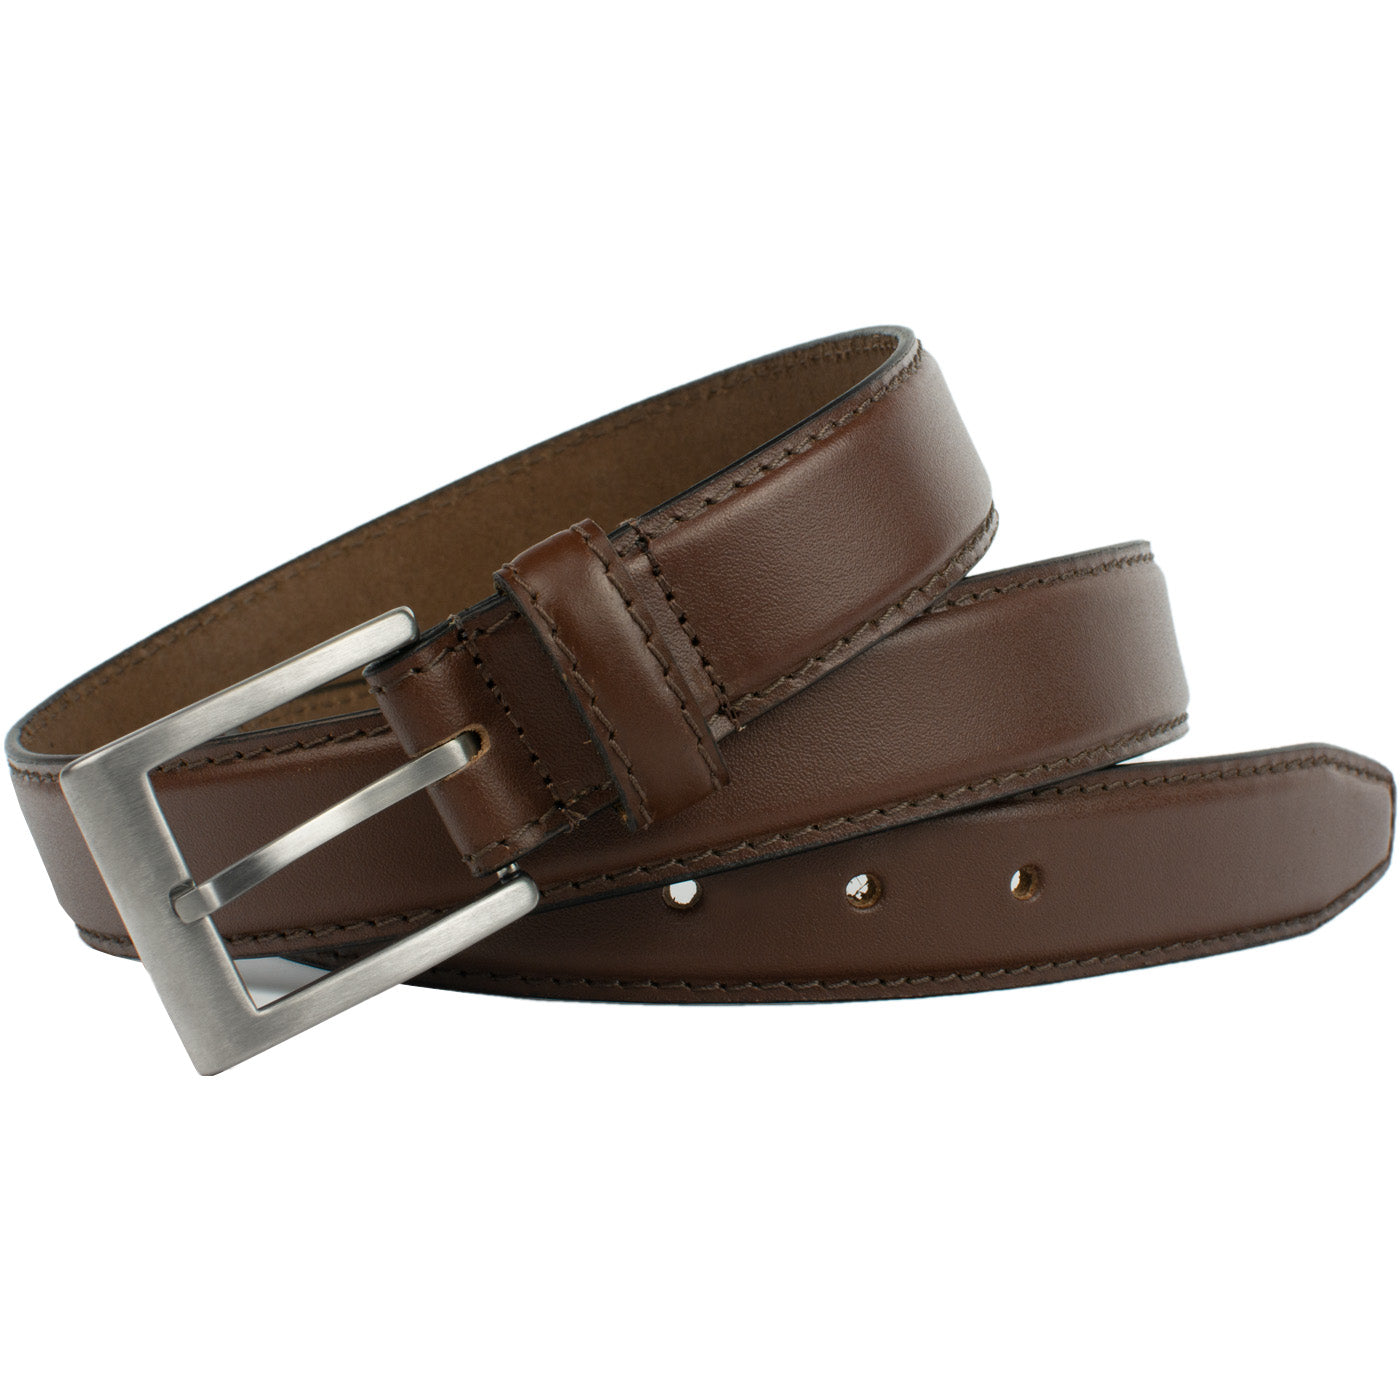 Silver Square Brown Belt by Nickel Smart- Brown Belt, Full Grain Leather, Titanium Buckle